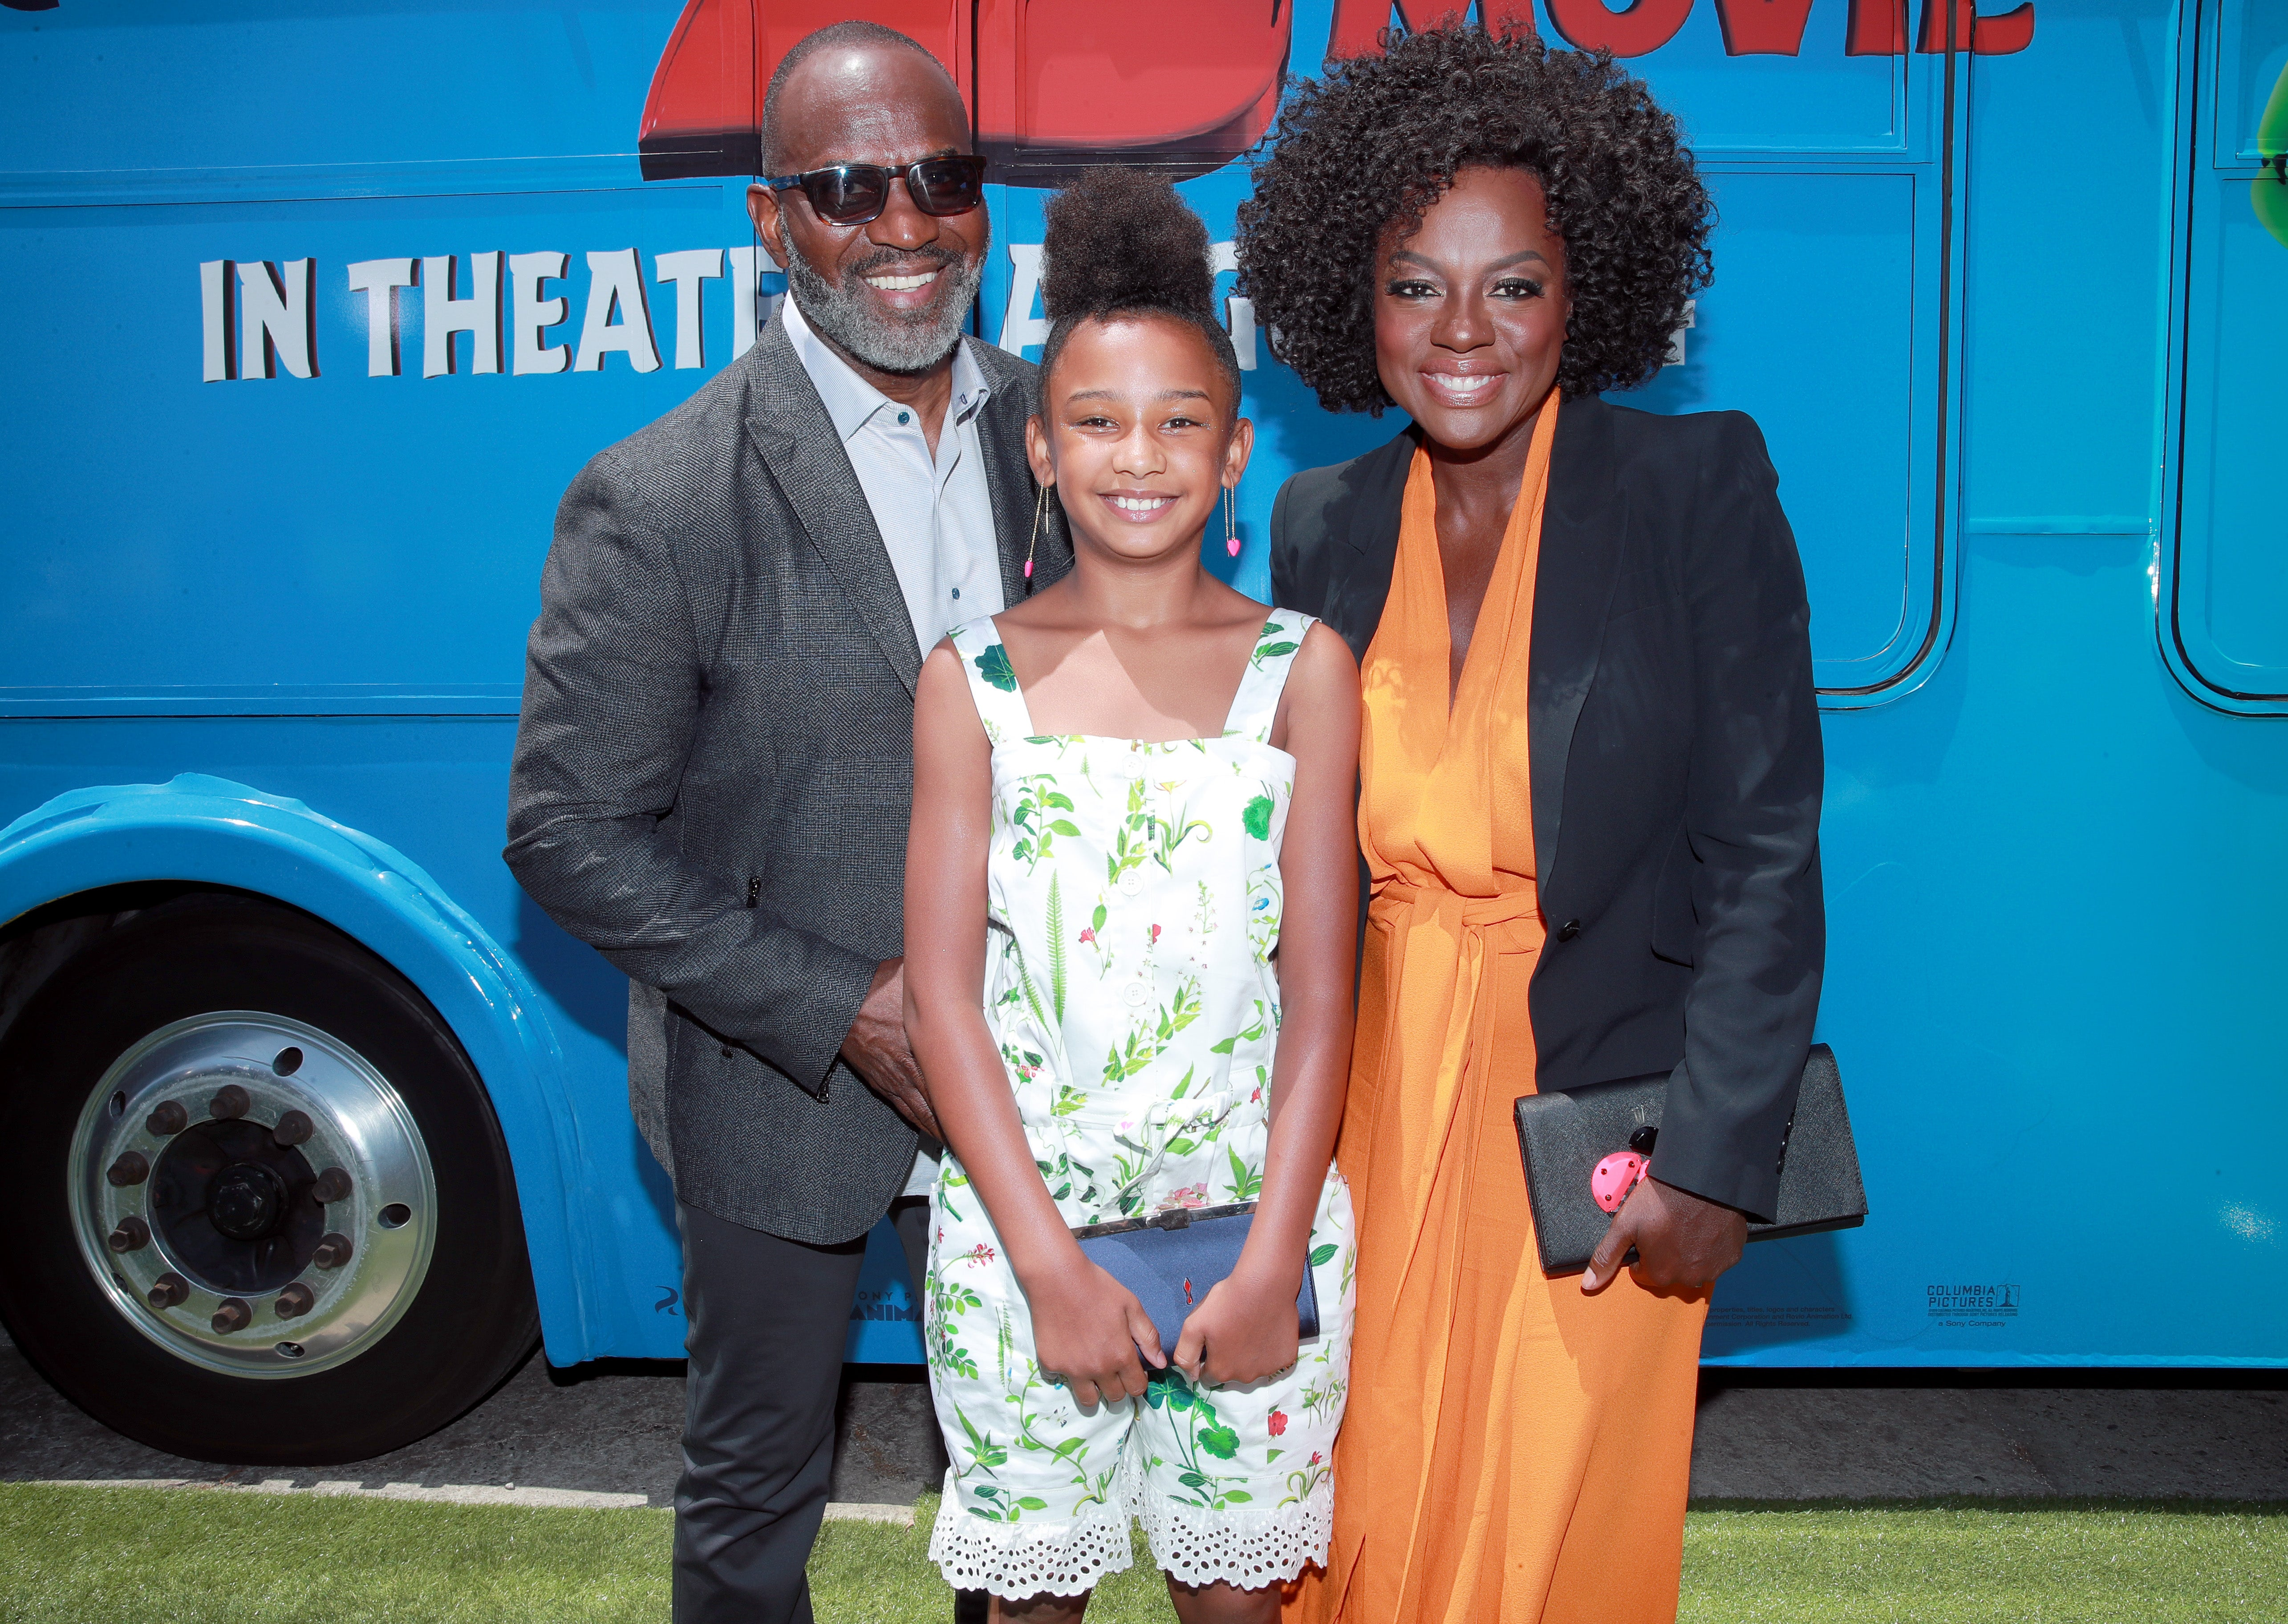 Viola Davis's Daughter, Genesis Tennon, Is Following In Her Mom's Footsteps With 'Angry Birds Movie 2' Debut